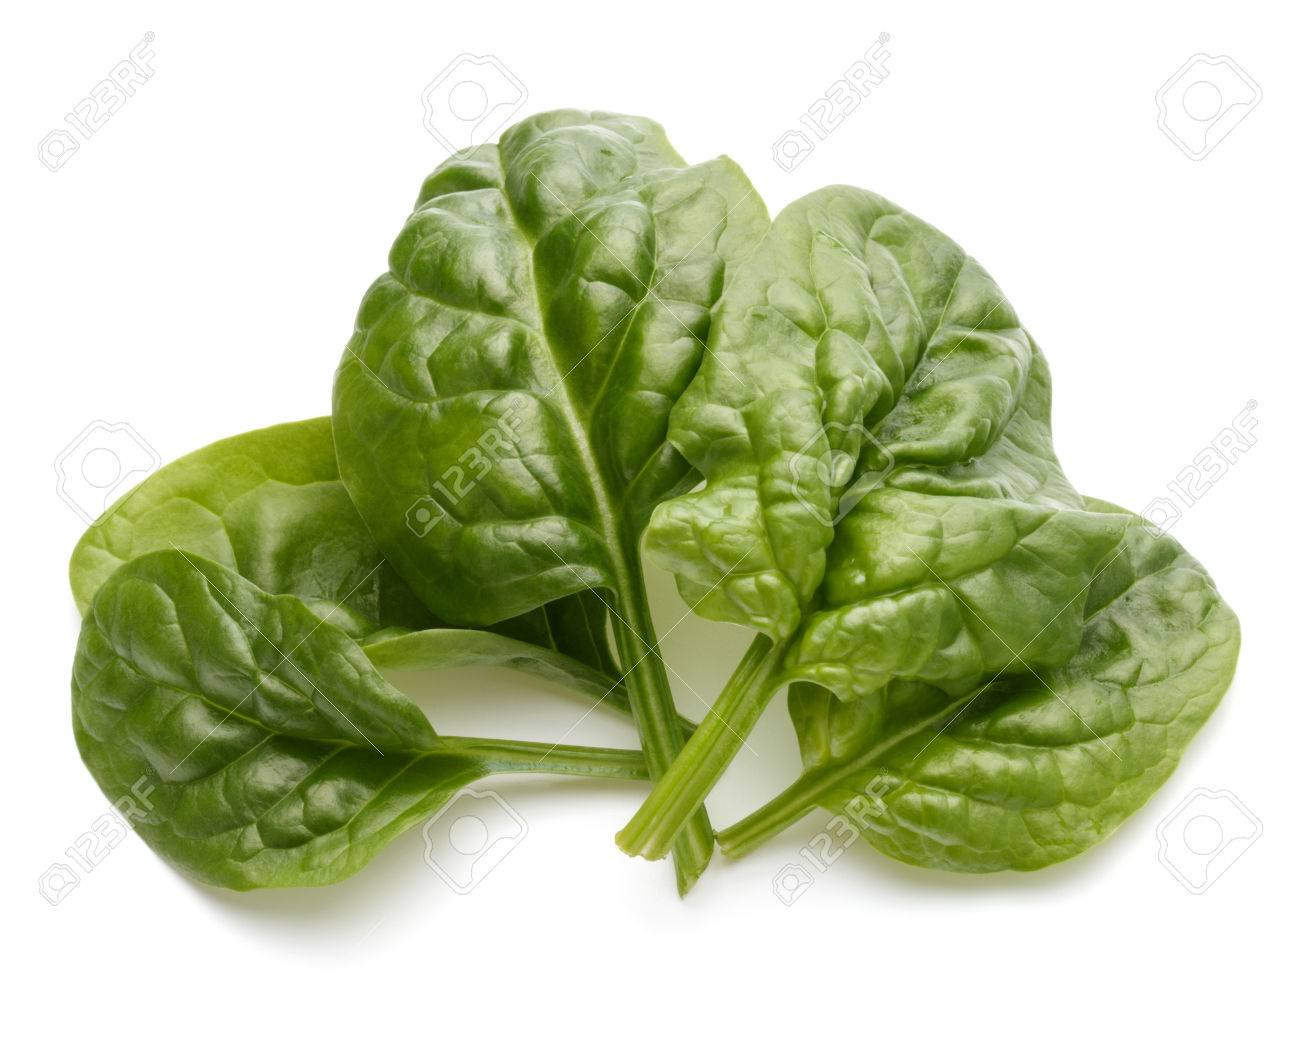 Baby spinach leaves isolated on white background cutout - 52252328